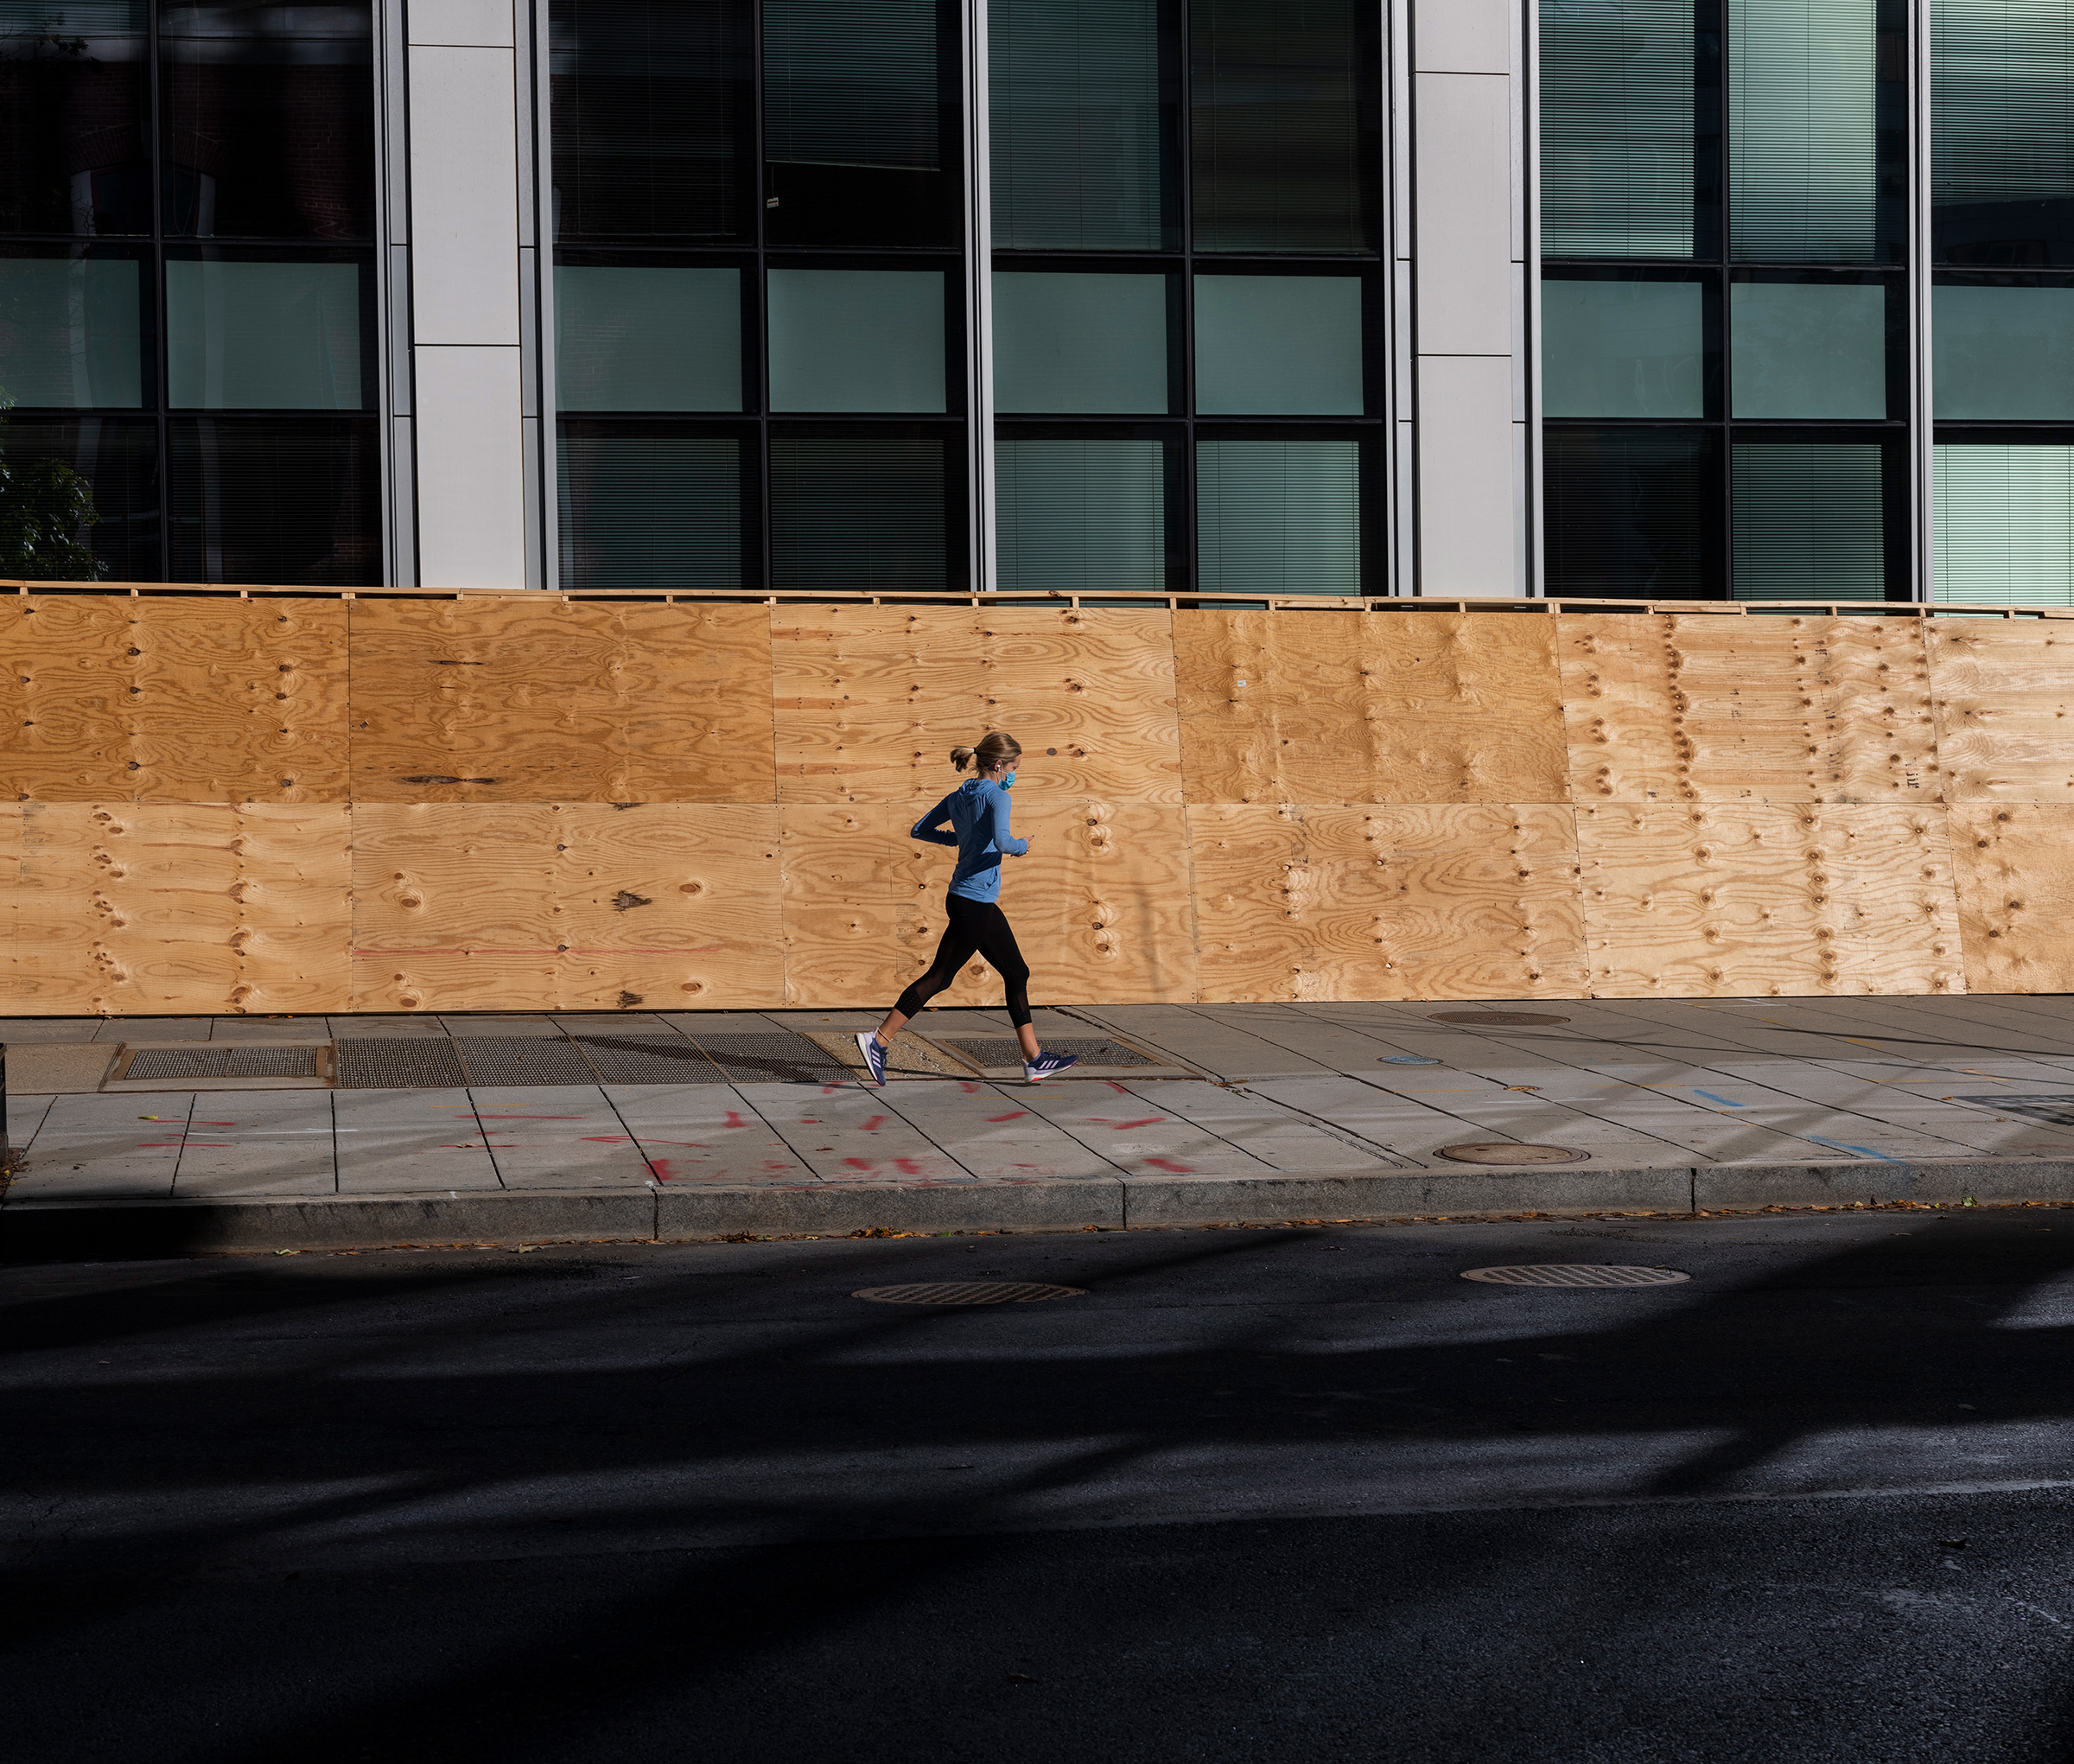 A jogger runs past a building boarded up as a precaution to any unrest related to the presidential election in Washington D.C., Nov. 3, 2020.